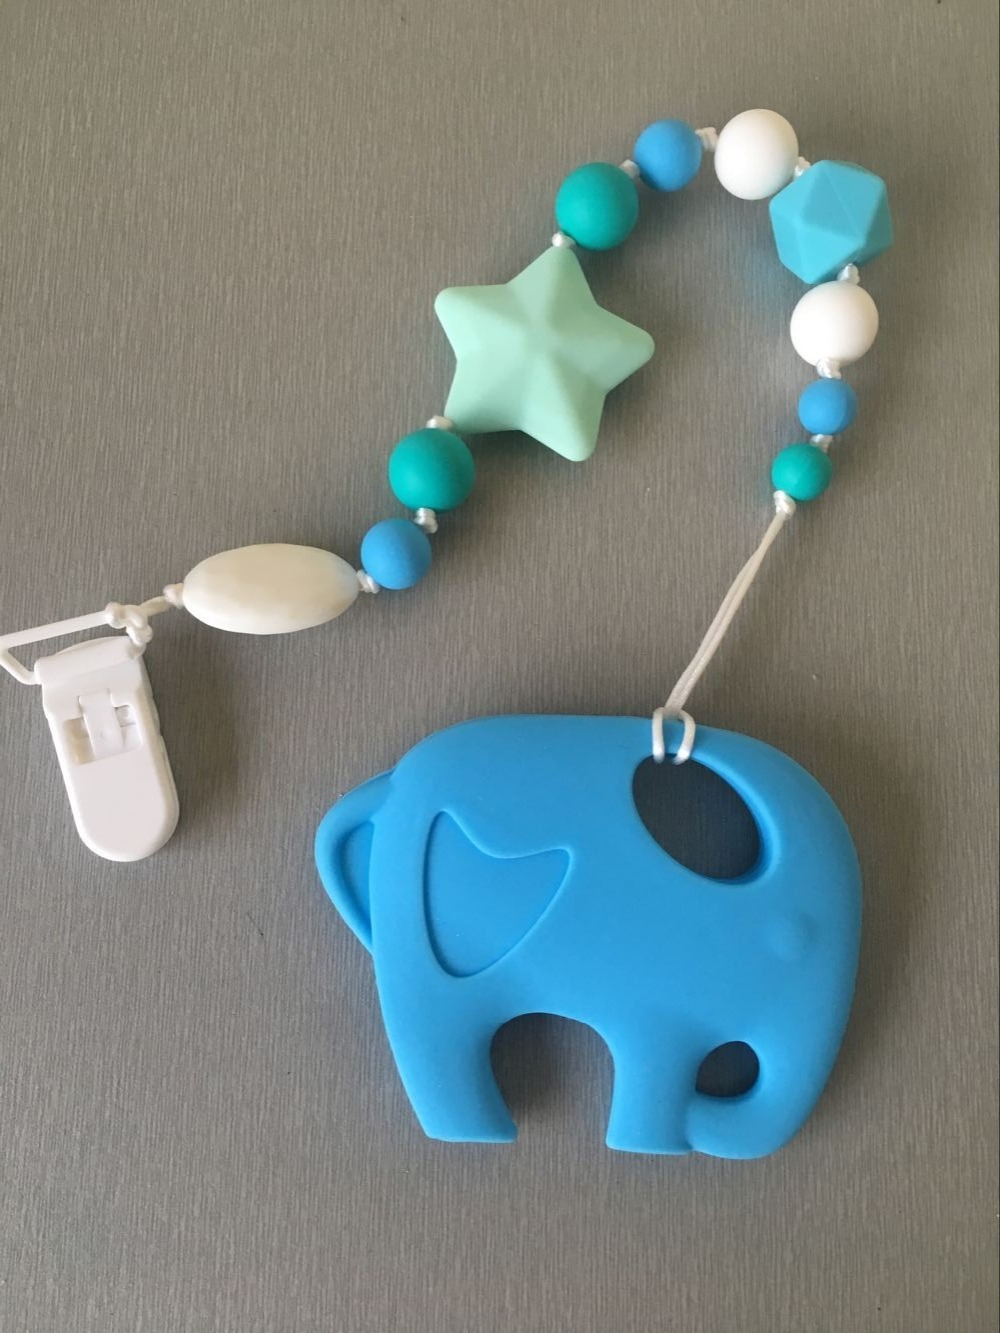 Cute Baby Teether Chains Toy or Accessory for Baby Pacifiers Safe Carrier pendant,Elepha ...